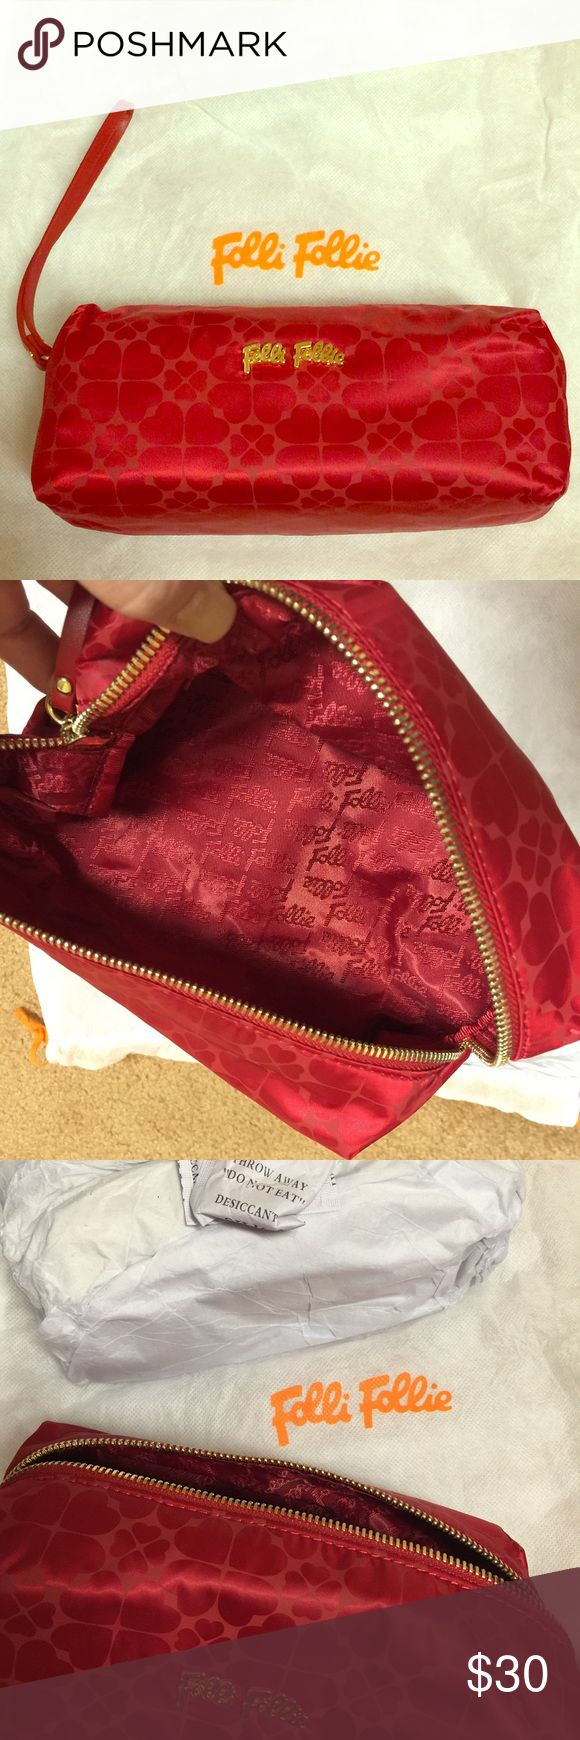 """Cosmetic/pen bag NWOT.✨Red cosmetic bag or perfect for pens! Comes with dust bag. Red leather zipper pull with red """"Folli Follie"""" imprint inside. Gold zipper with gold """"Folli Follie"""" emblem.♥️ Folli Follie  Bags Cosmetic Bags & Cases"""